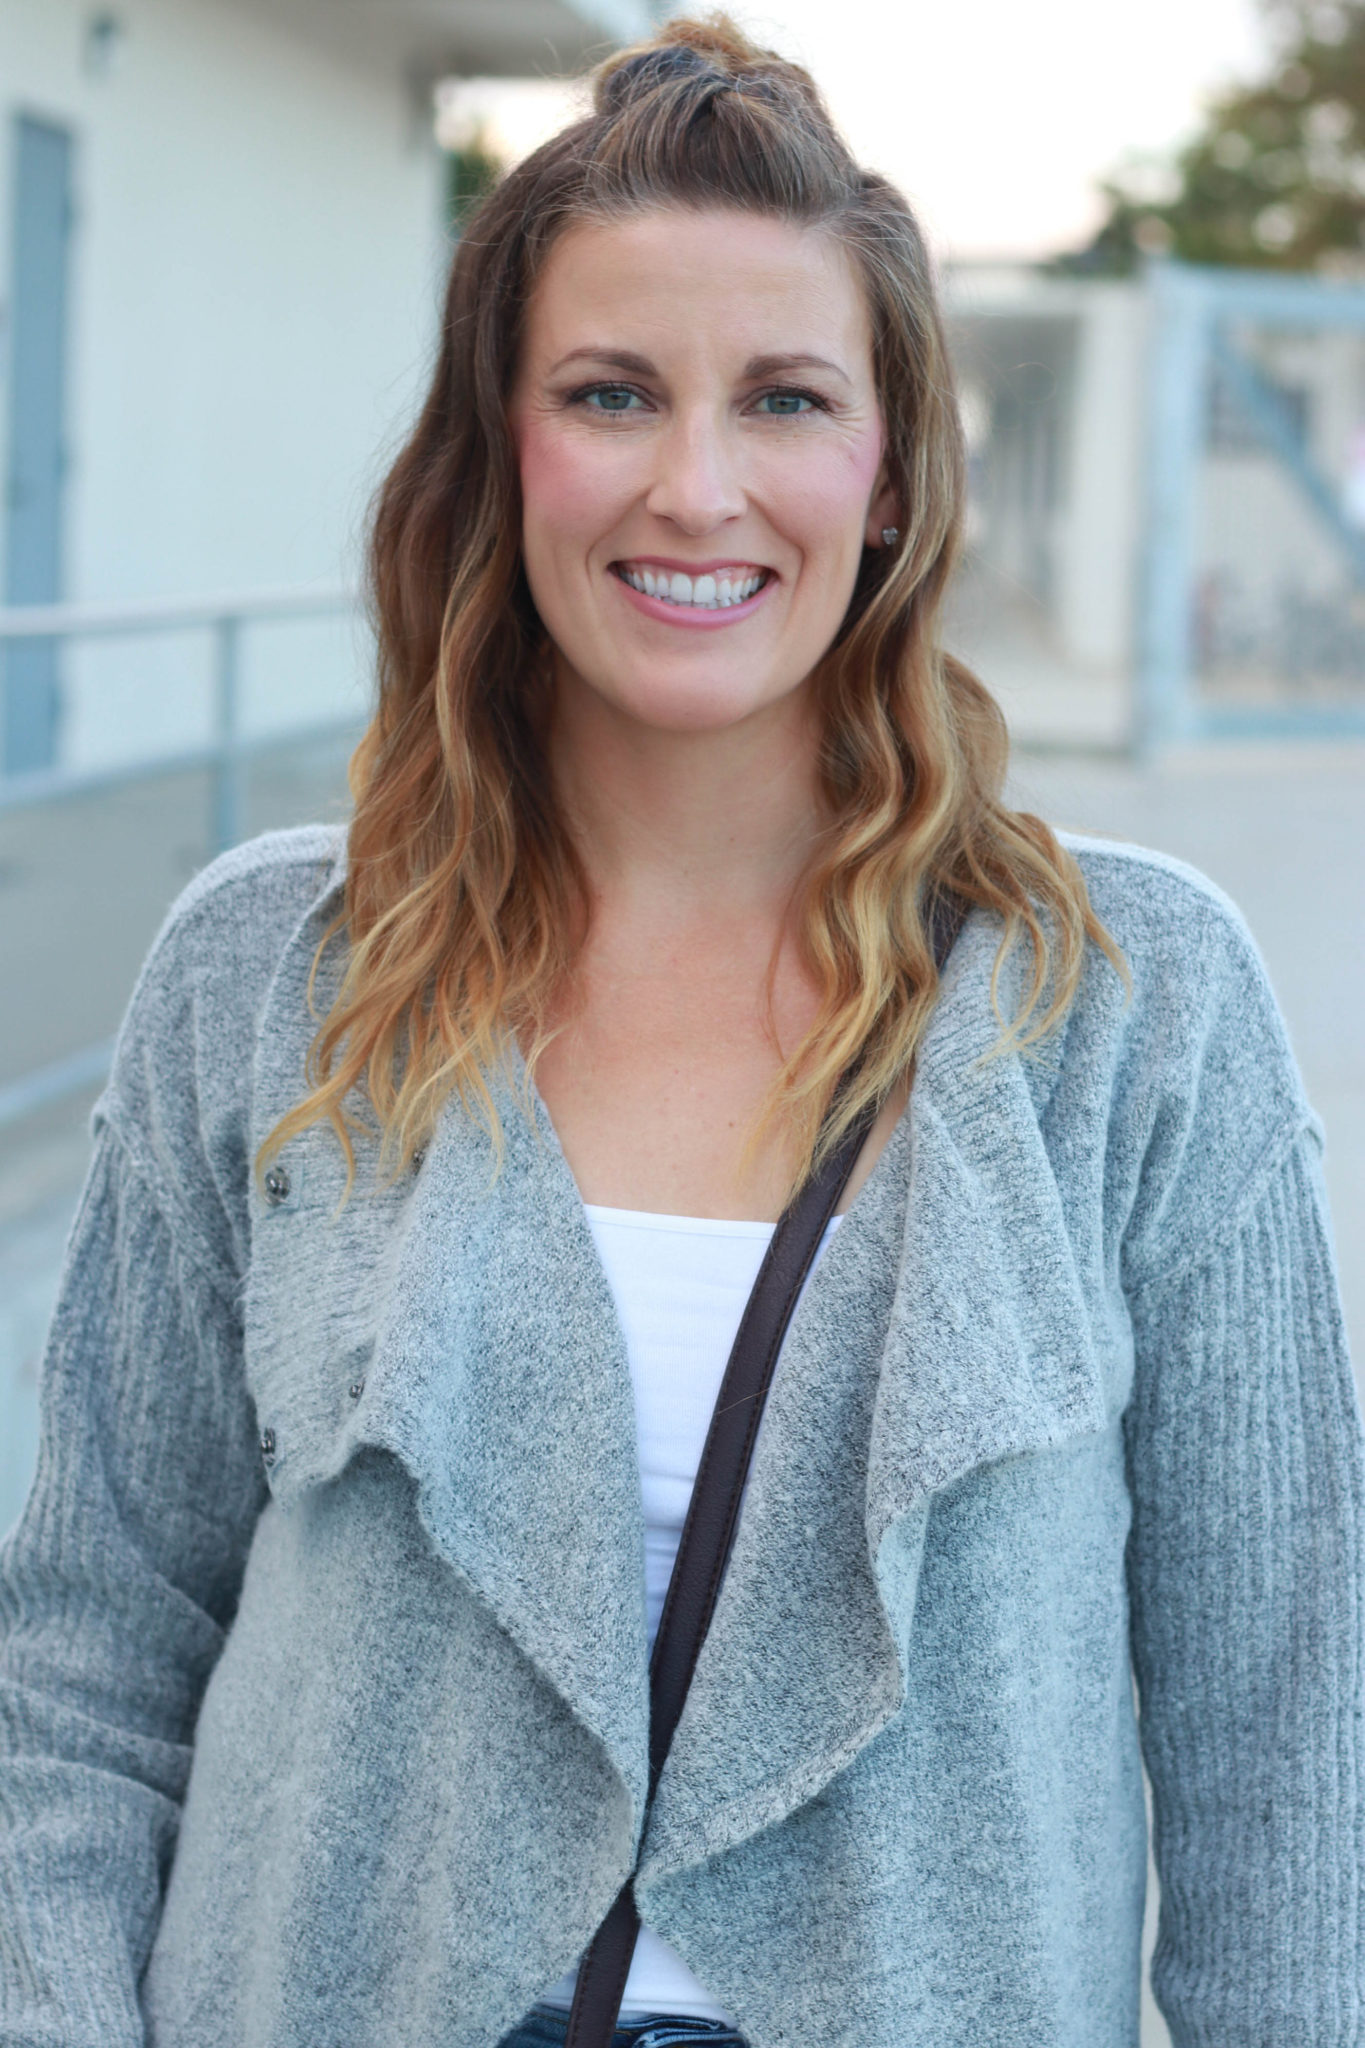 Popular Los Angeles style blogger, The Fashionista Momma, shares here favorite second day hairstyles. Quick and easy second day hairstyles that you can do every day for work or play.